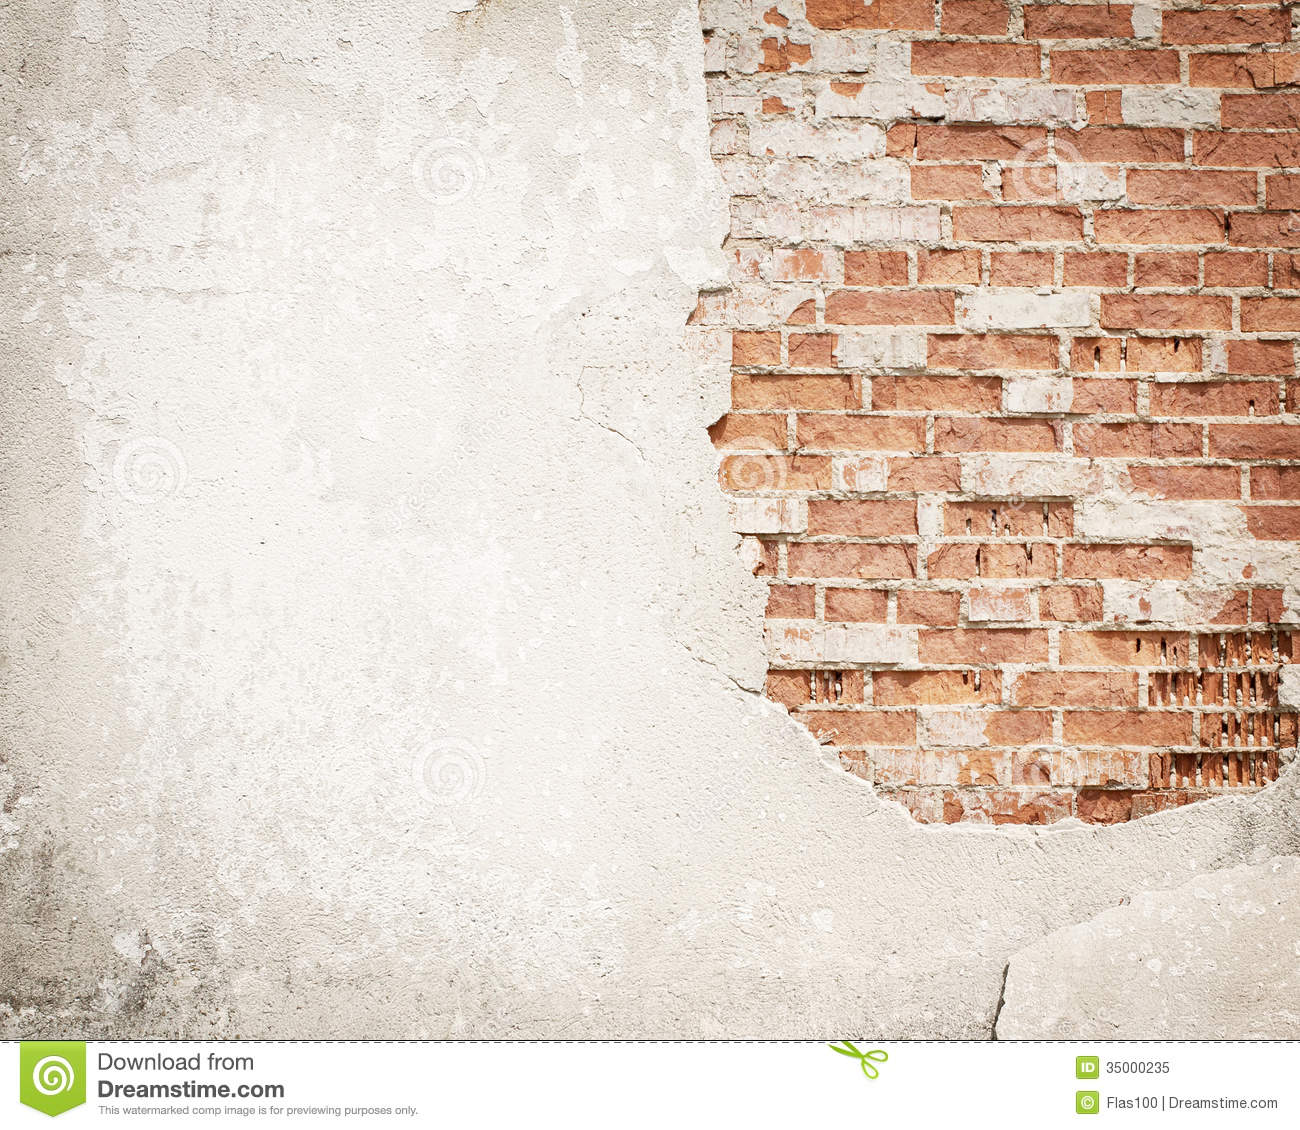 Rust Cement Wall : Brick concrete grunge wall background stock image